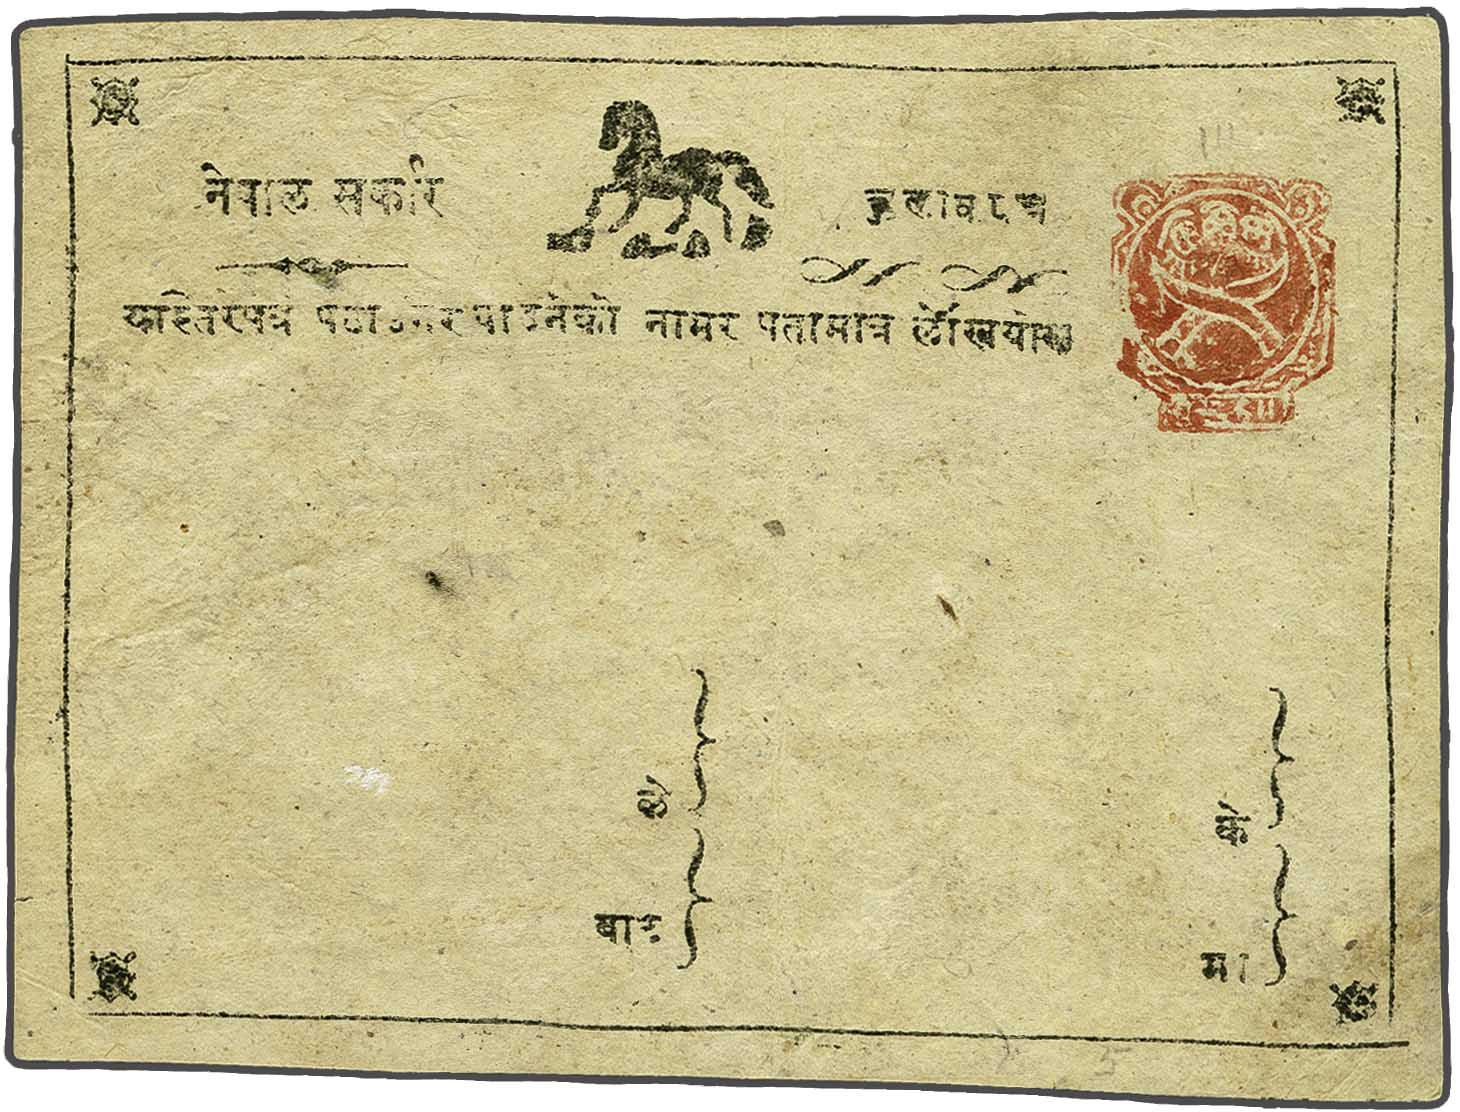 Lot 33 - Great Britain and former colonies Nepal -  Corinphila Veilingen Auction 245-246 Day 1 - Nepal - The Dick van der Wateren Collection, Foreign countries - Single lots, Picture postcards